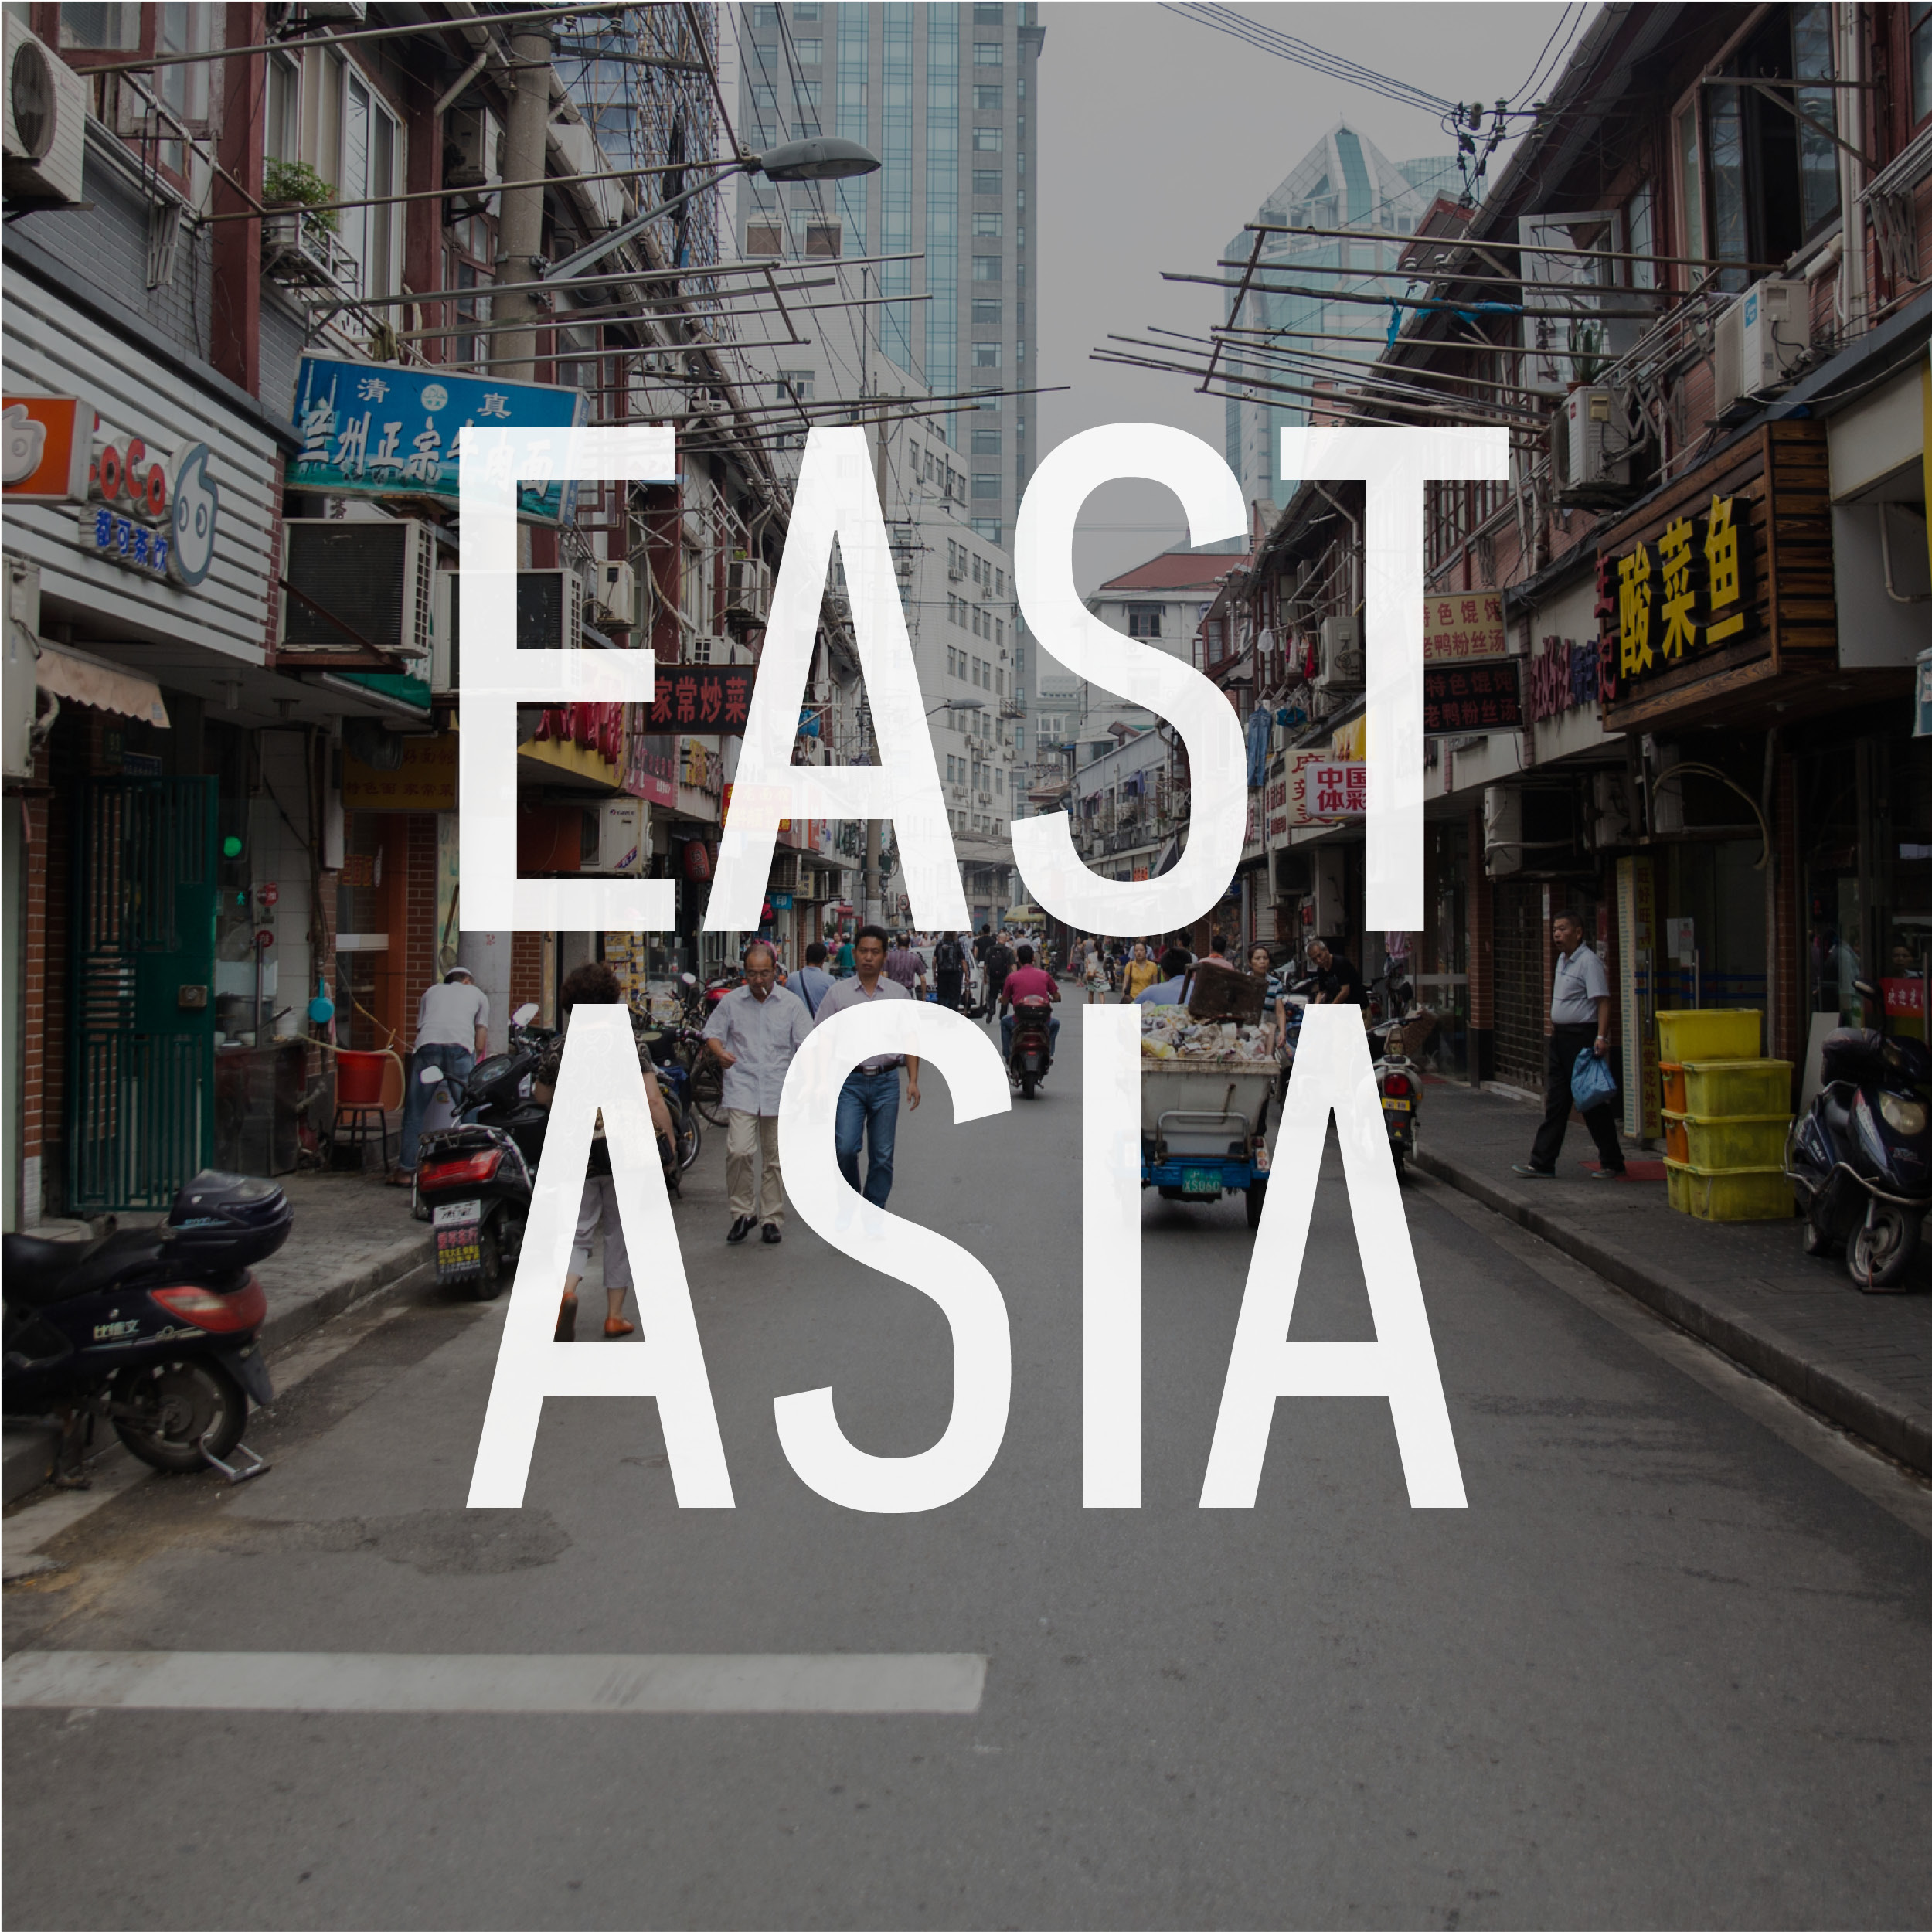 Harvest has an incredible family on the ground in East Asia running a restaurant there and pouring themselves into evangelism and discipleship efforts. They also work directly with those affected by AIDS and leprosy.